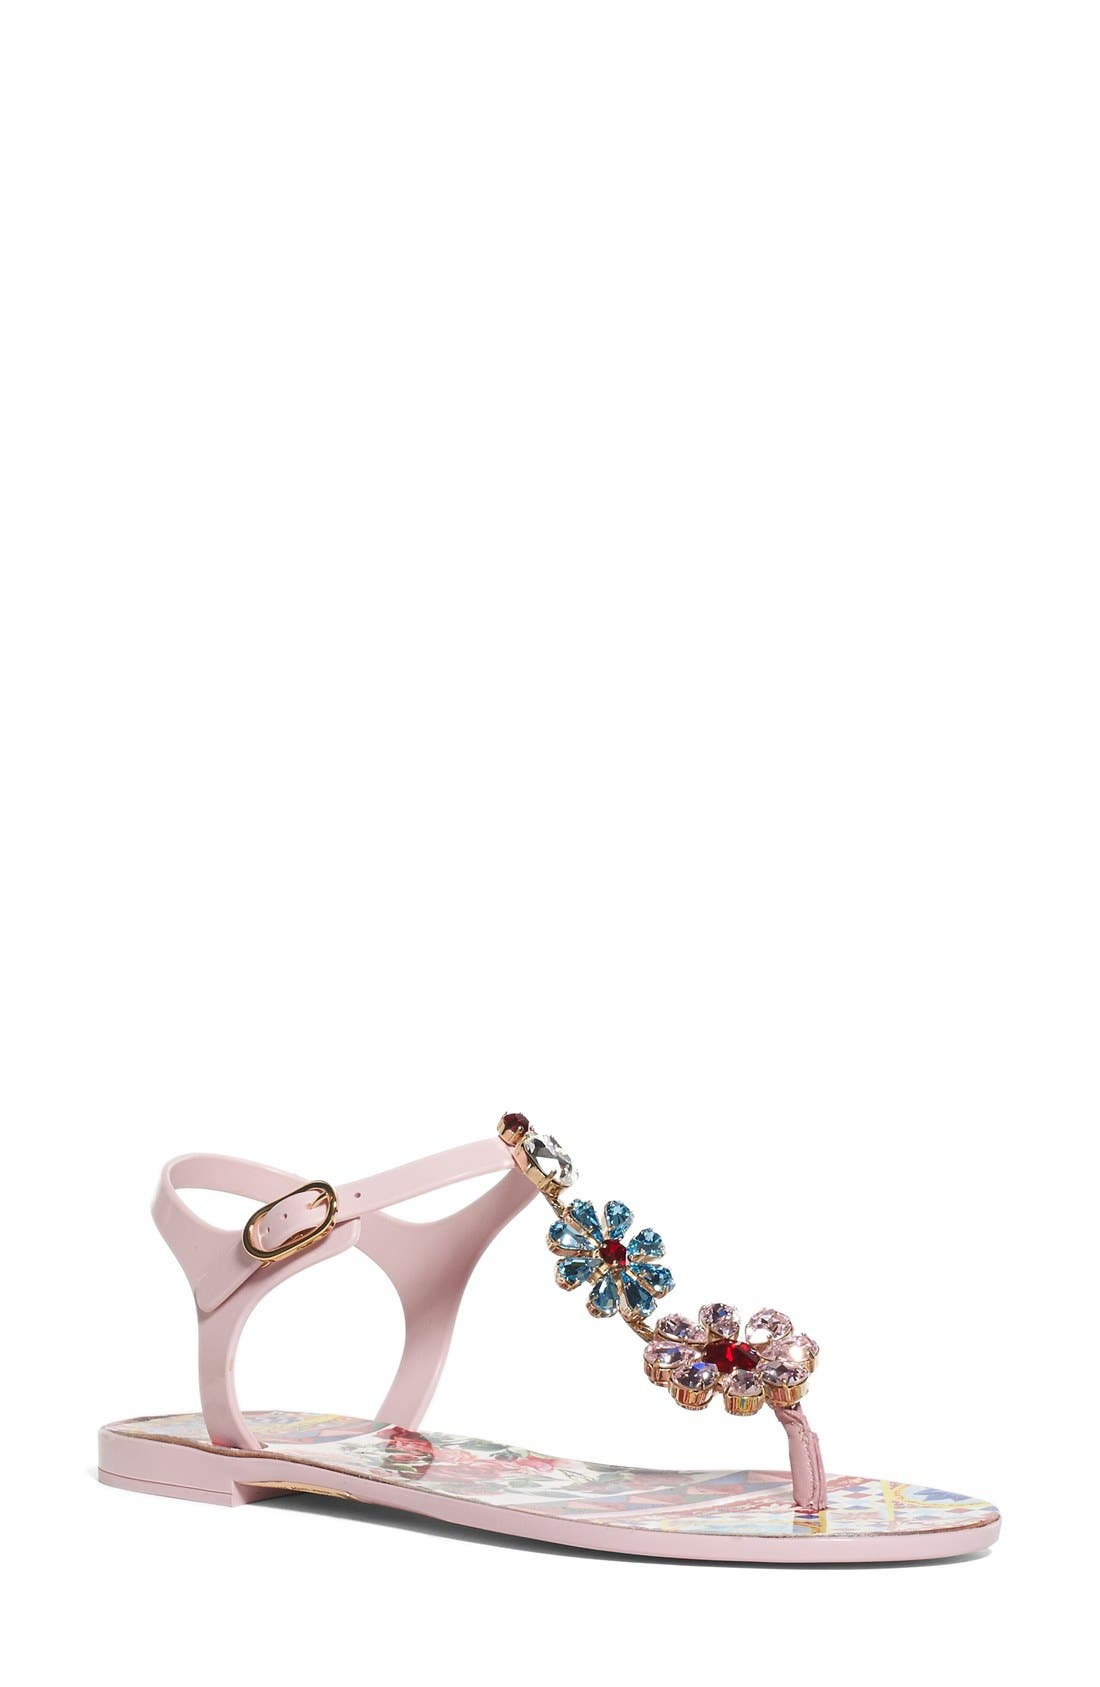 DOLCE&GABBANA Carretto Embellished Jelly Sandal